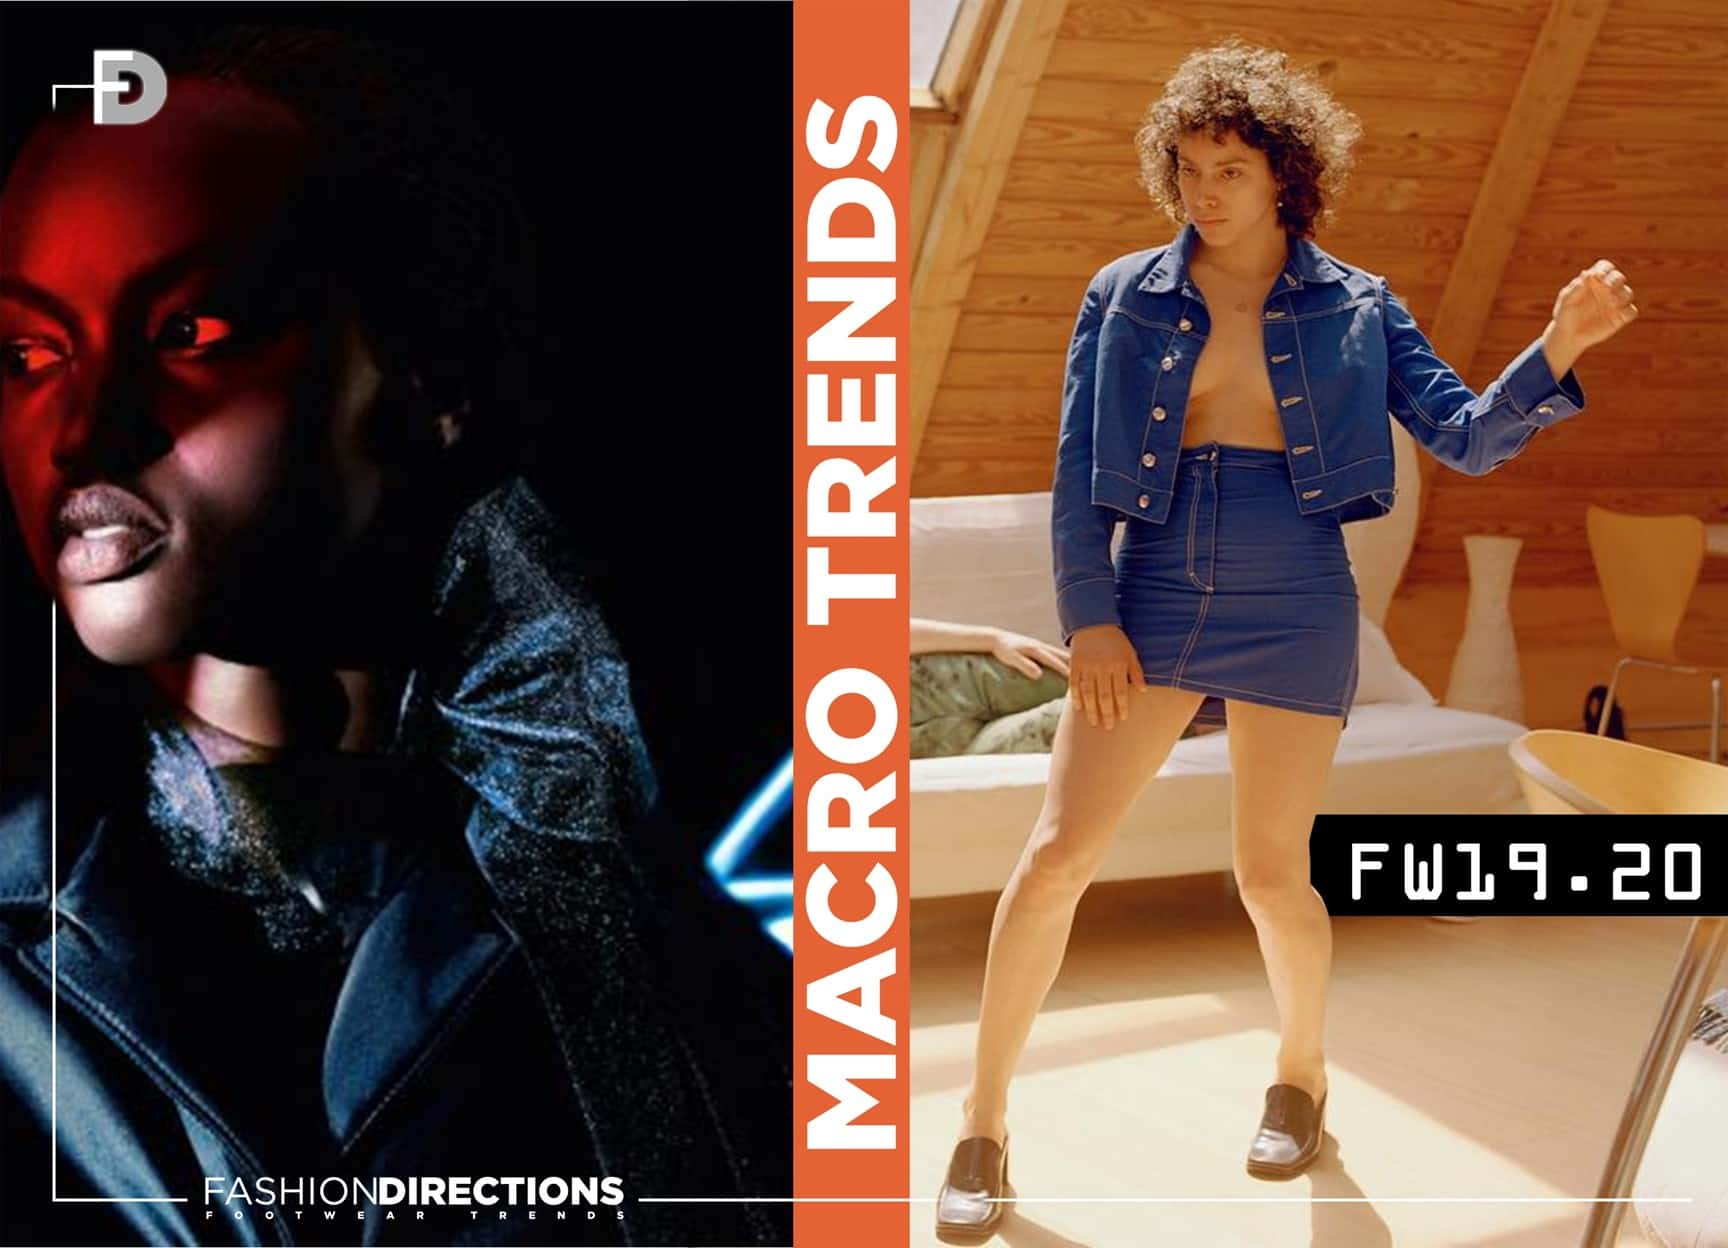 fashion macro trends FW19/20